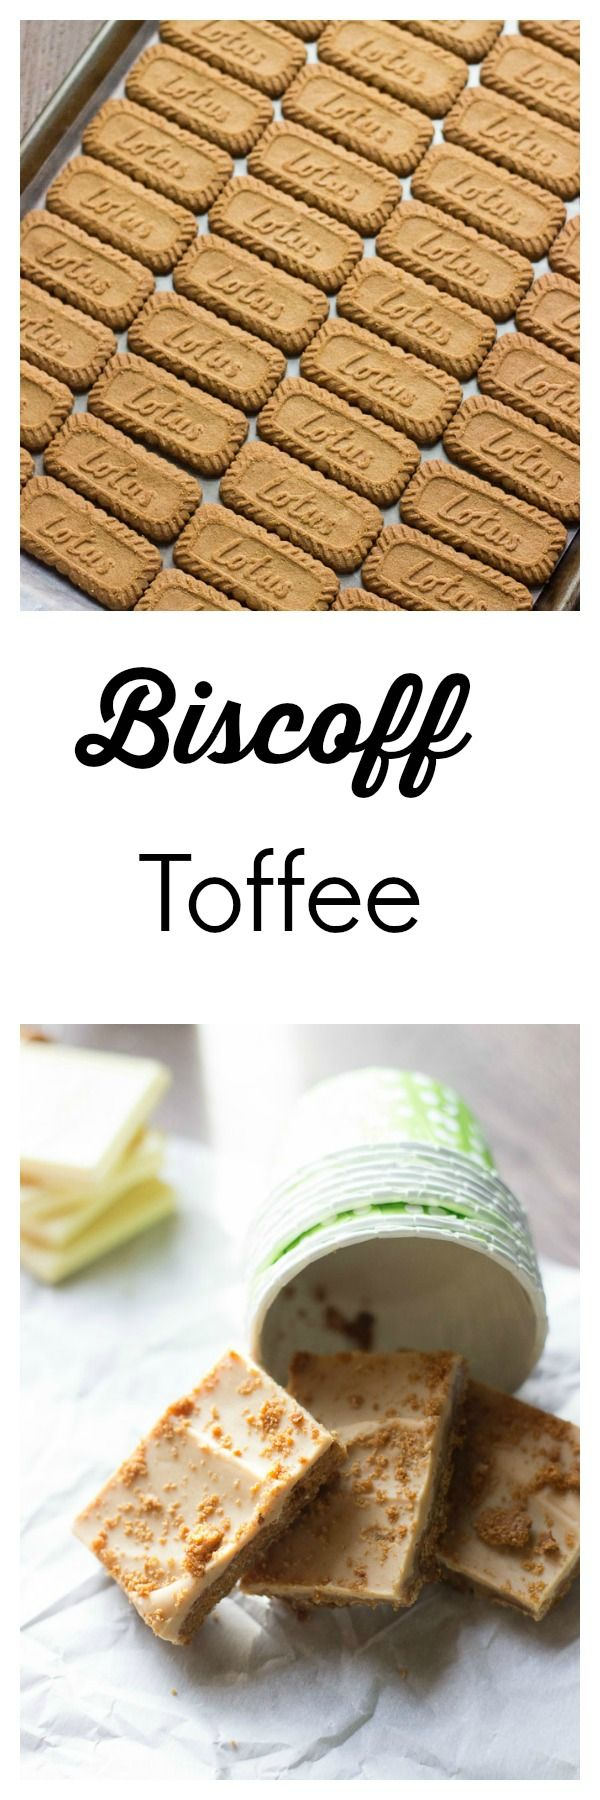 This easy toffee starts with Biscoff cookies as the base then is covered with a simple caramel layer and topped with creamy white chocolate.